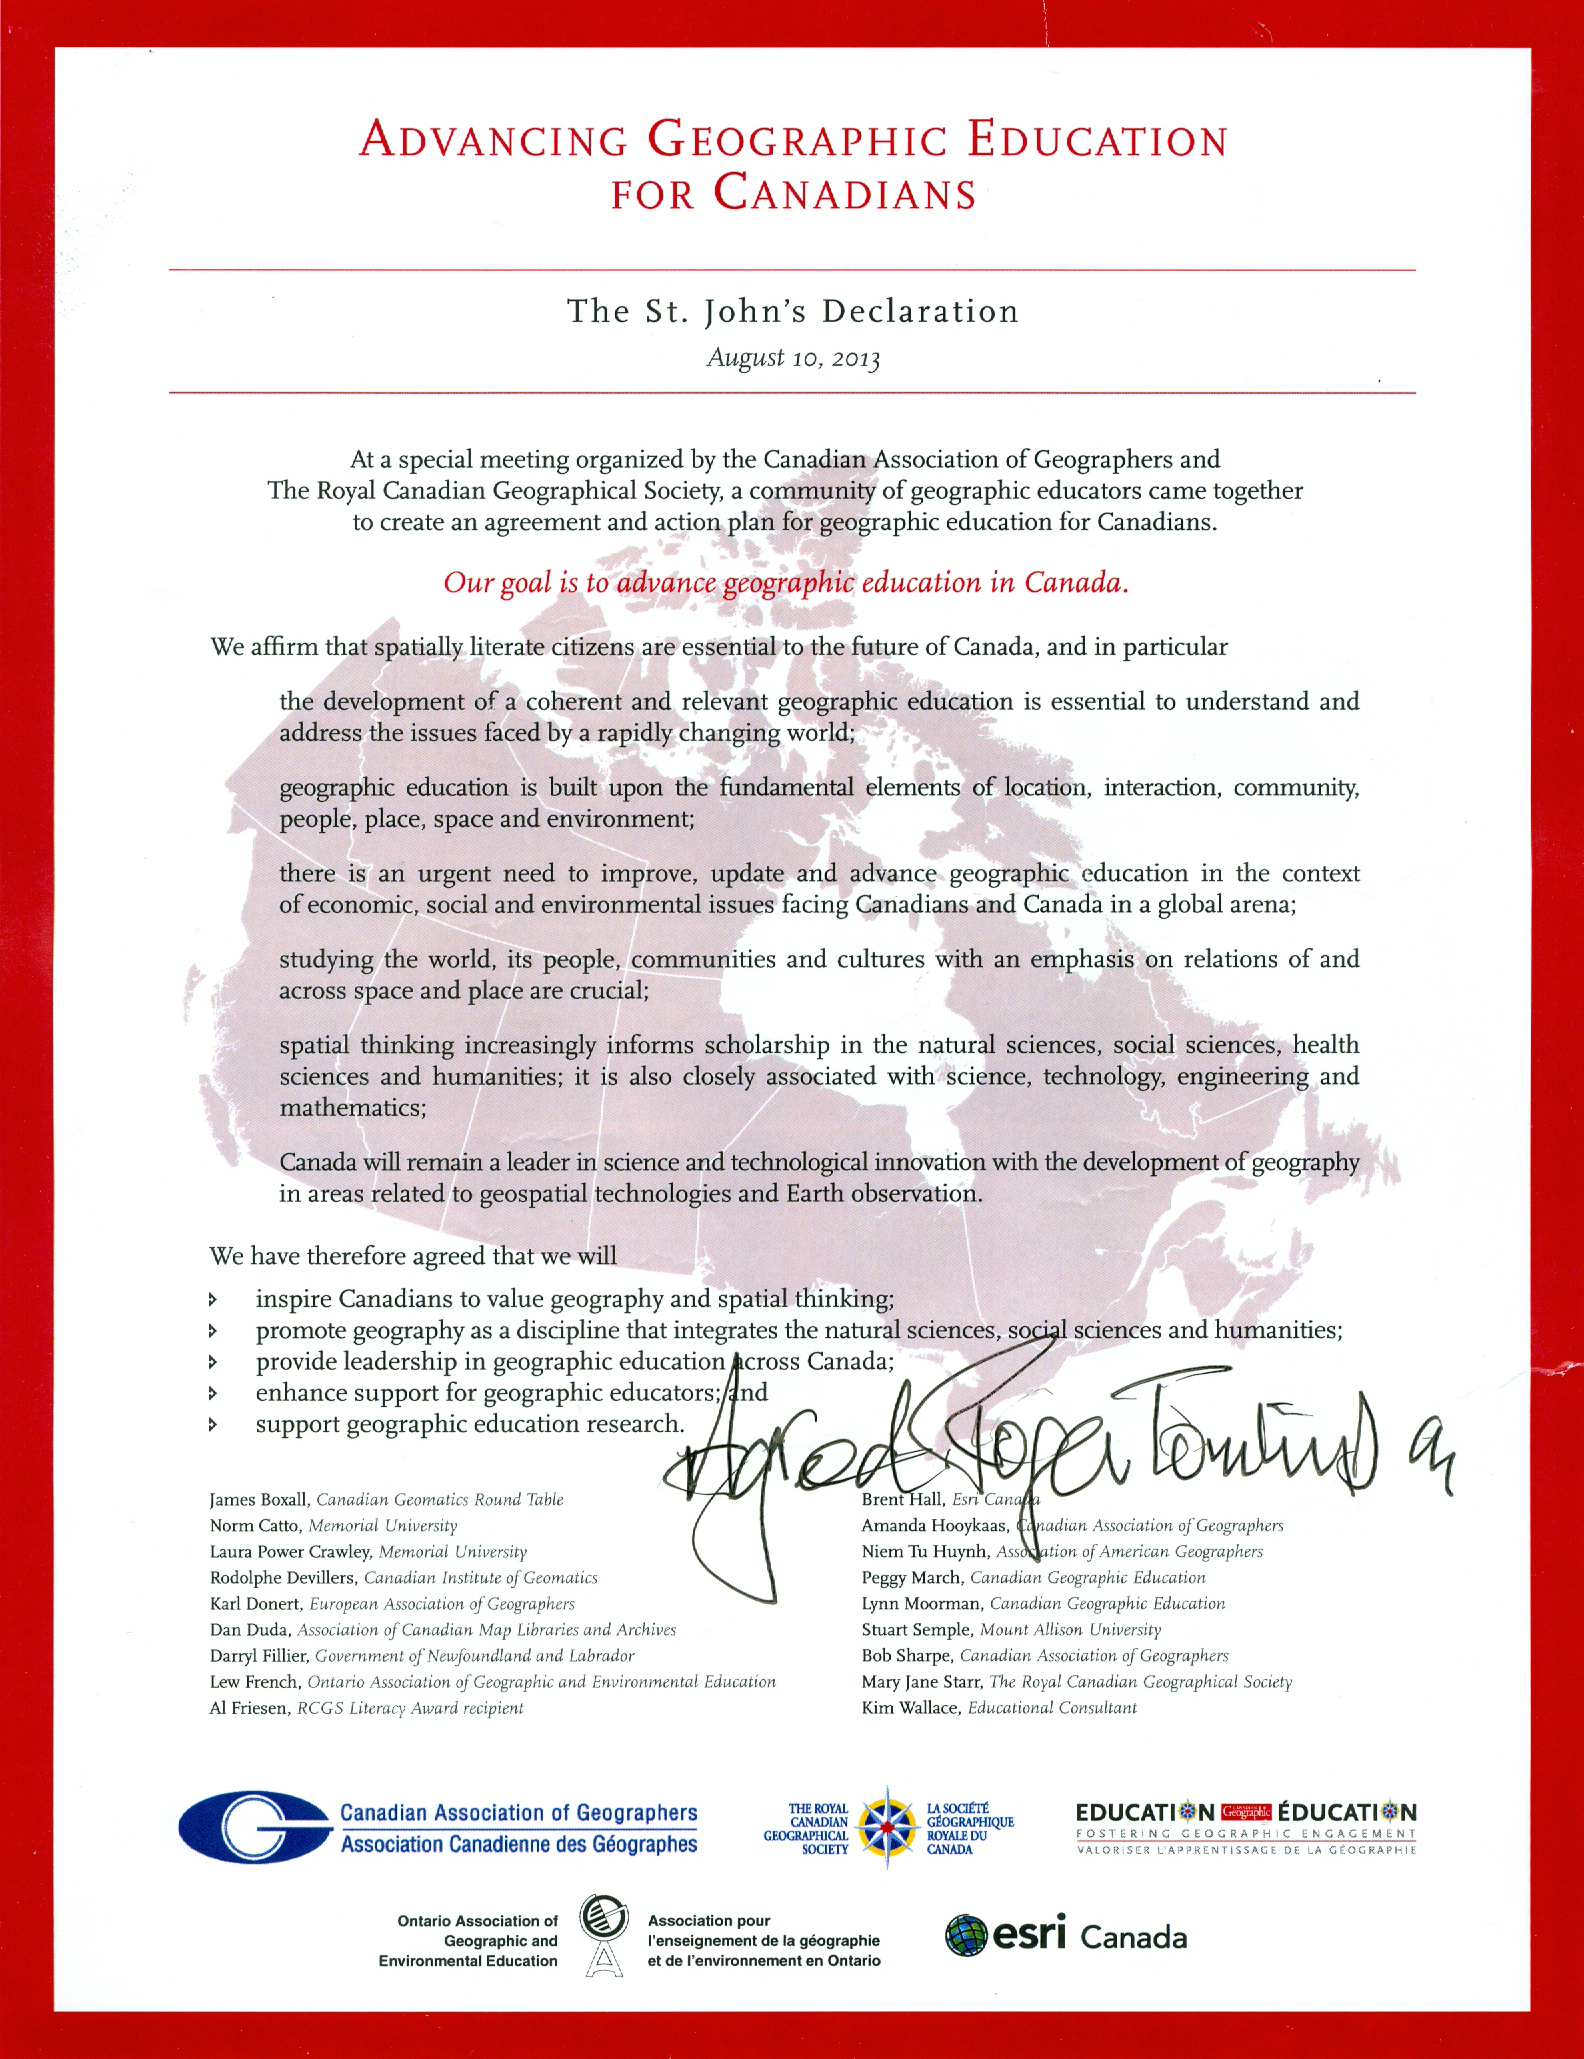 St.Johns Declaration signed by Roger Tomlinson (Father of GIS)